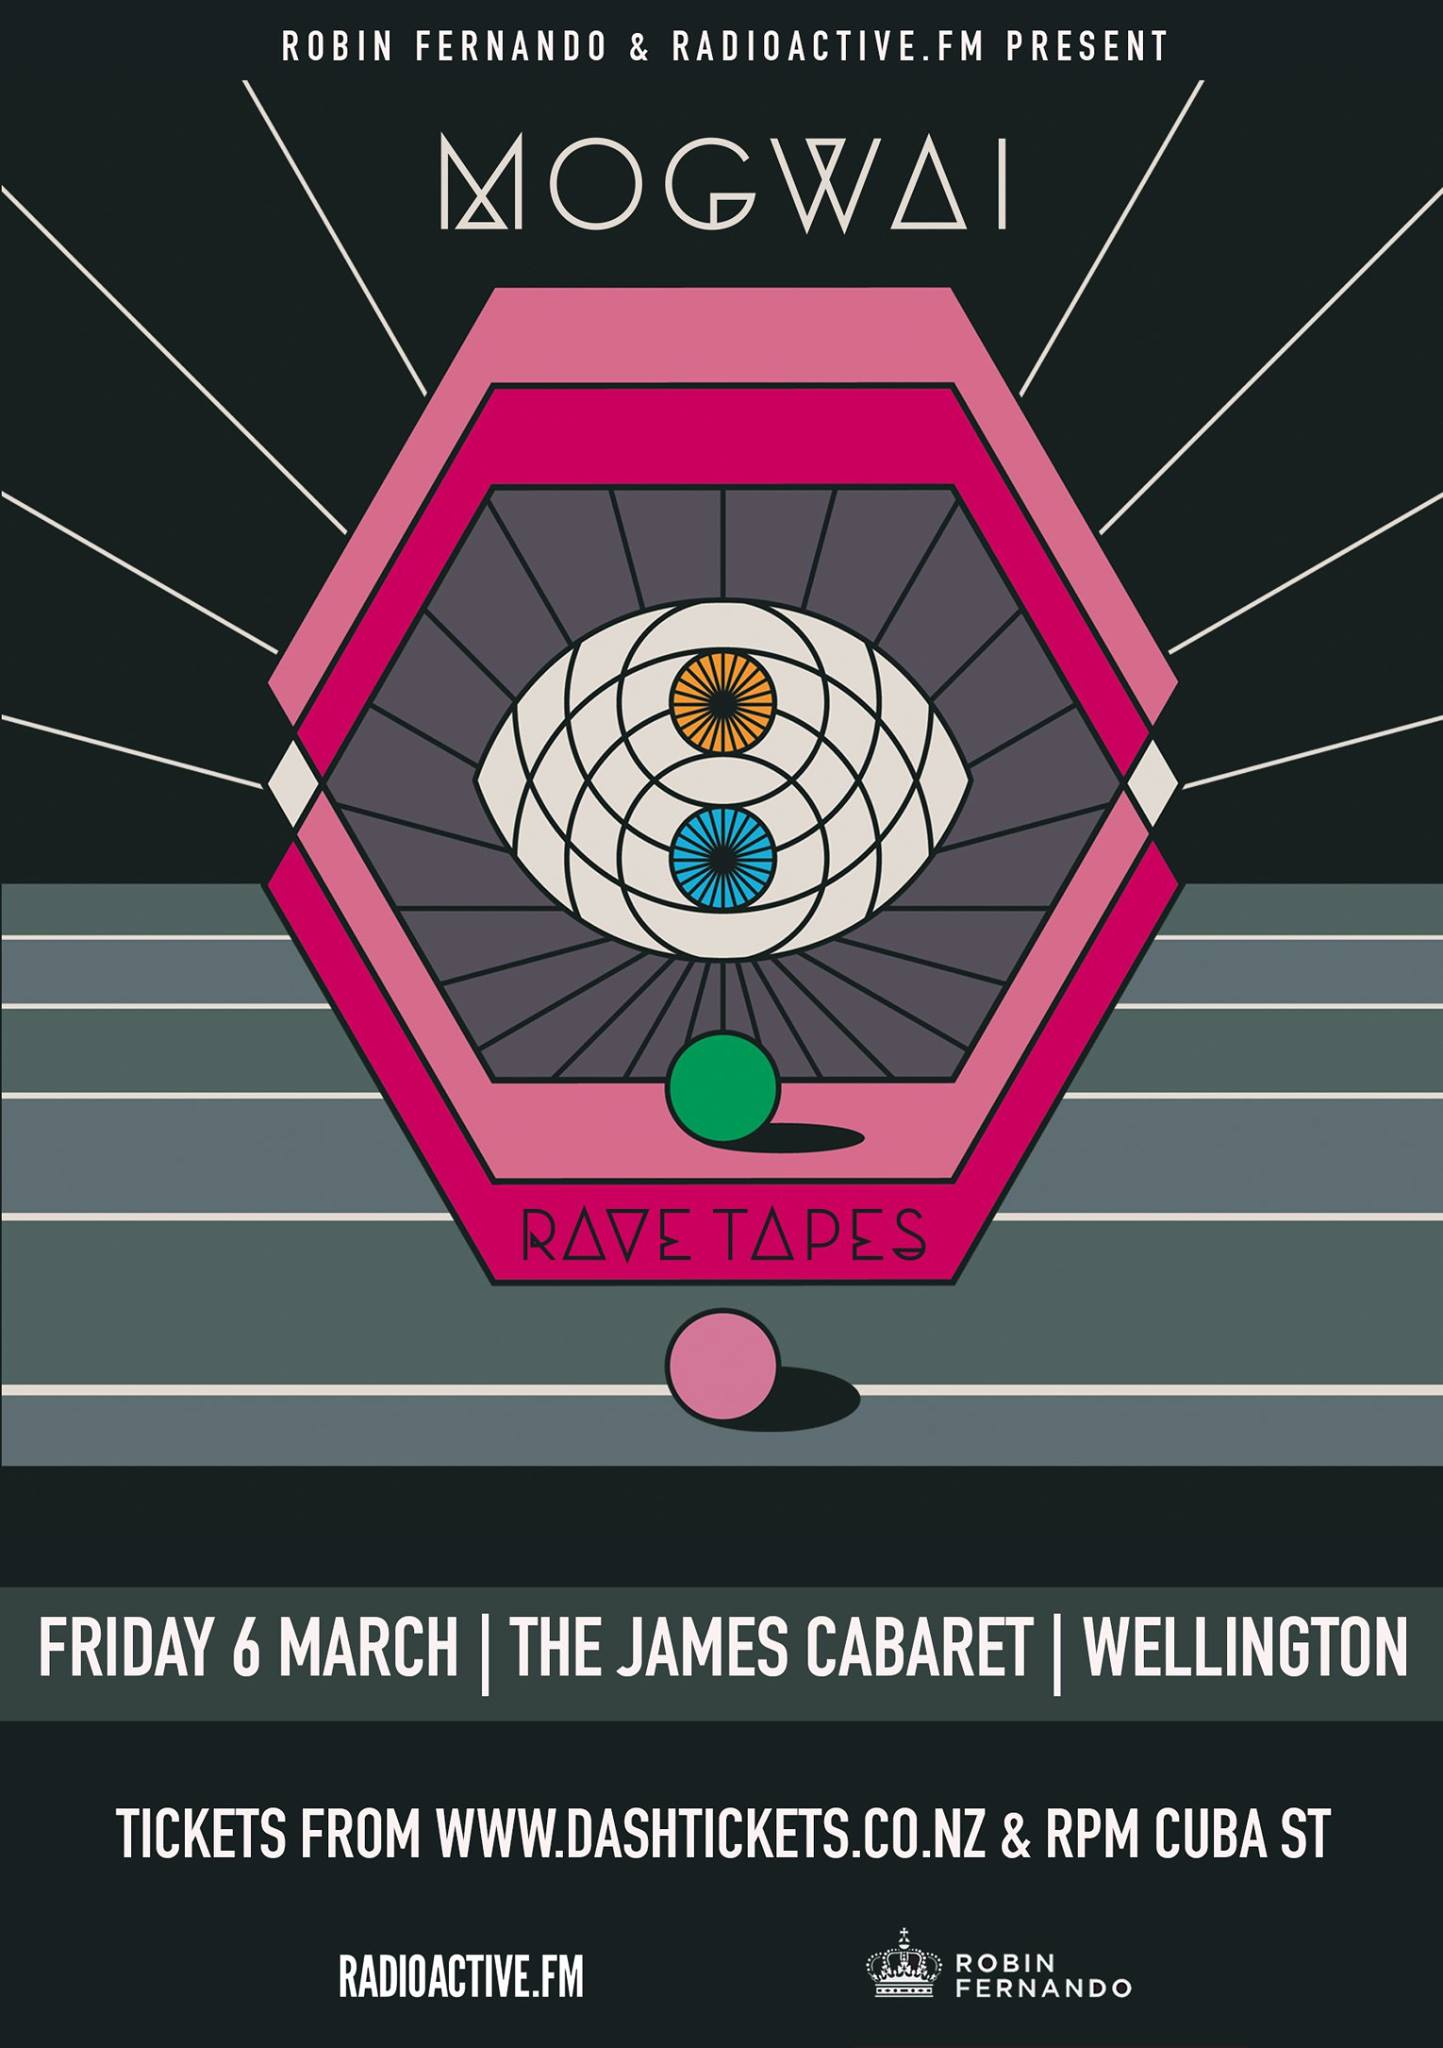 mogwai-poster-wellington-james-cabaret.jpg